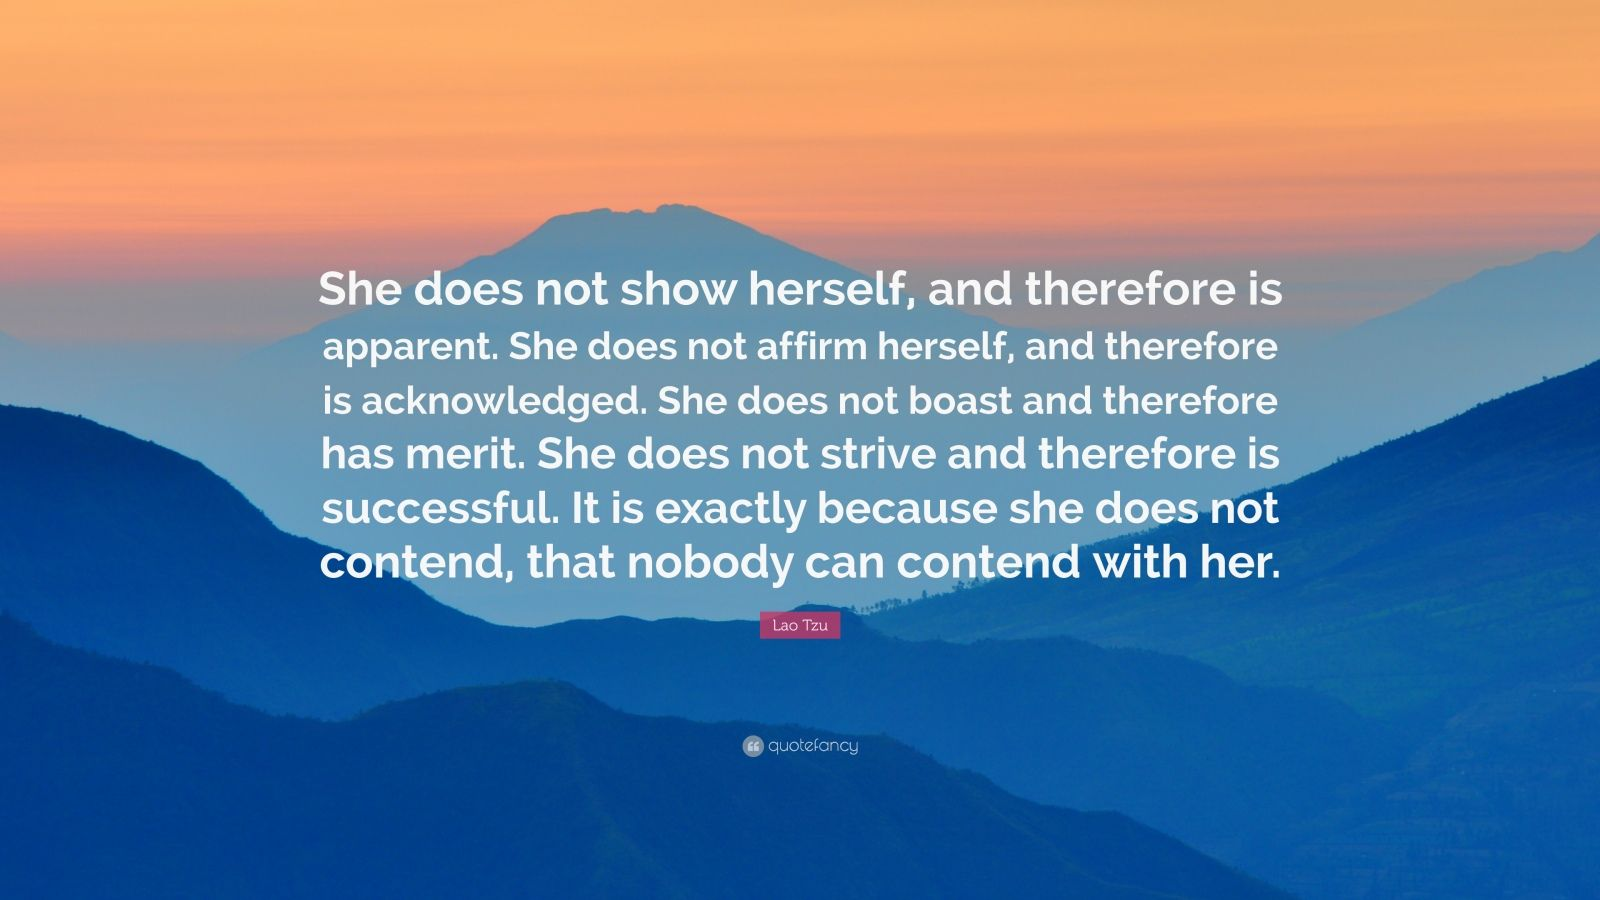 """Lao Tzu Quote: """"She does not show herself, and therefore is apparent. She does not affirm herself, and therefore is acknowledged. She does not boast and therefore has merit. She does not strive and therefore is successful. It is exactly because she does not contend, that nobody can contend with her."""""""